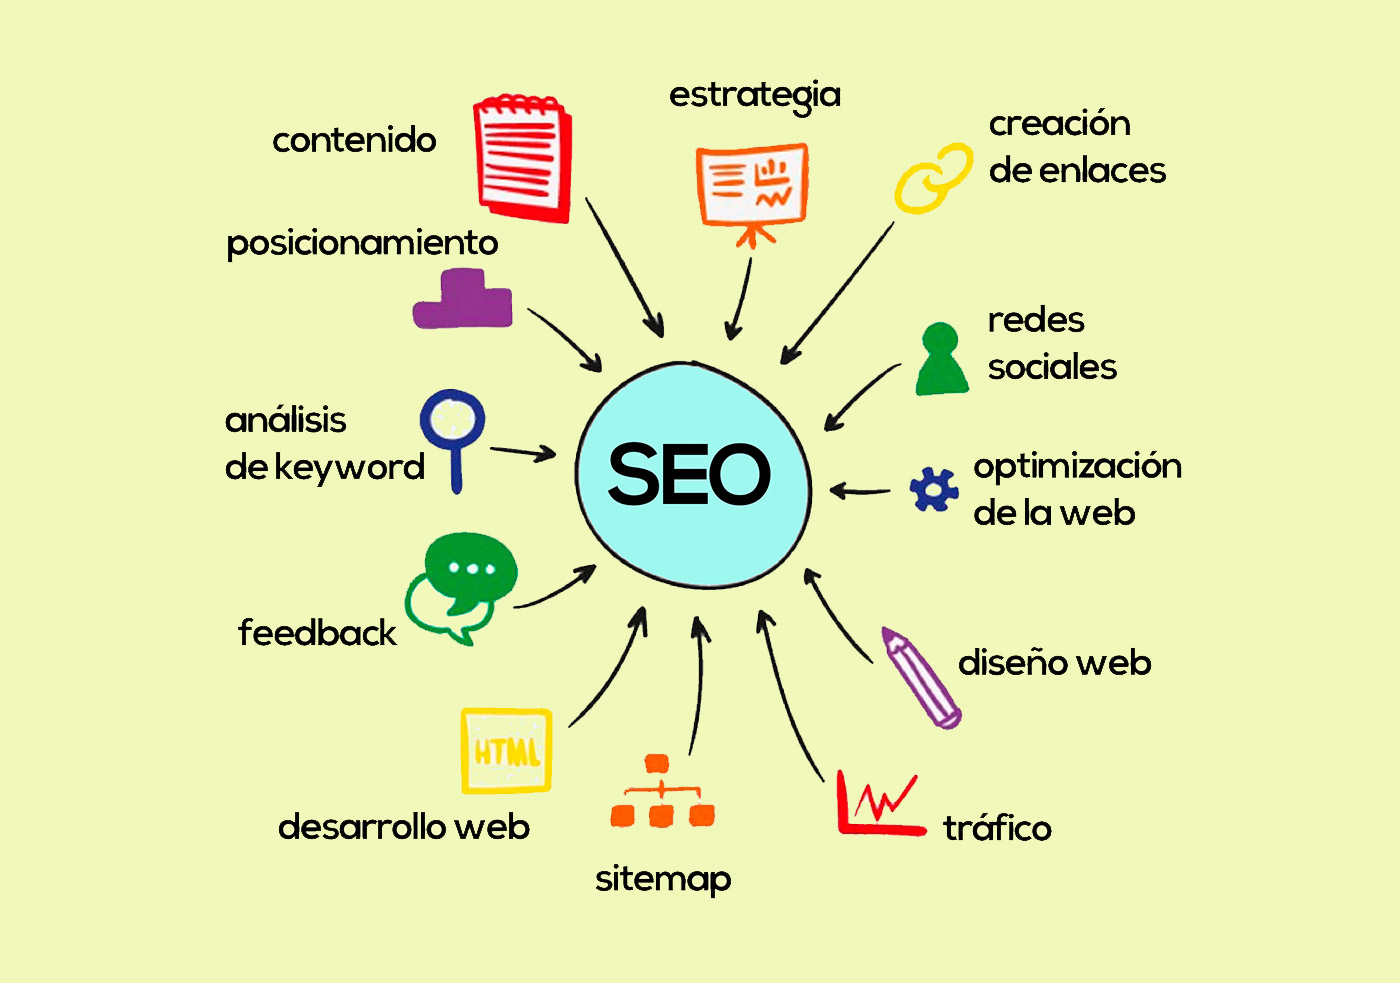 recomendaciones marketing de contenido